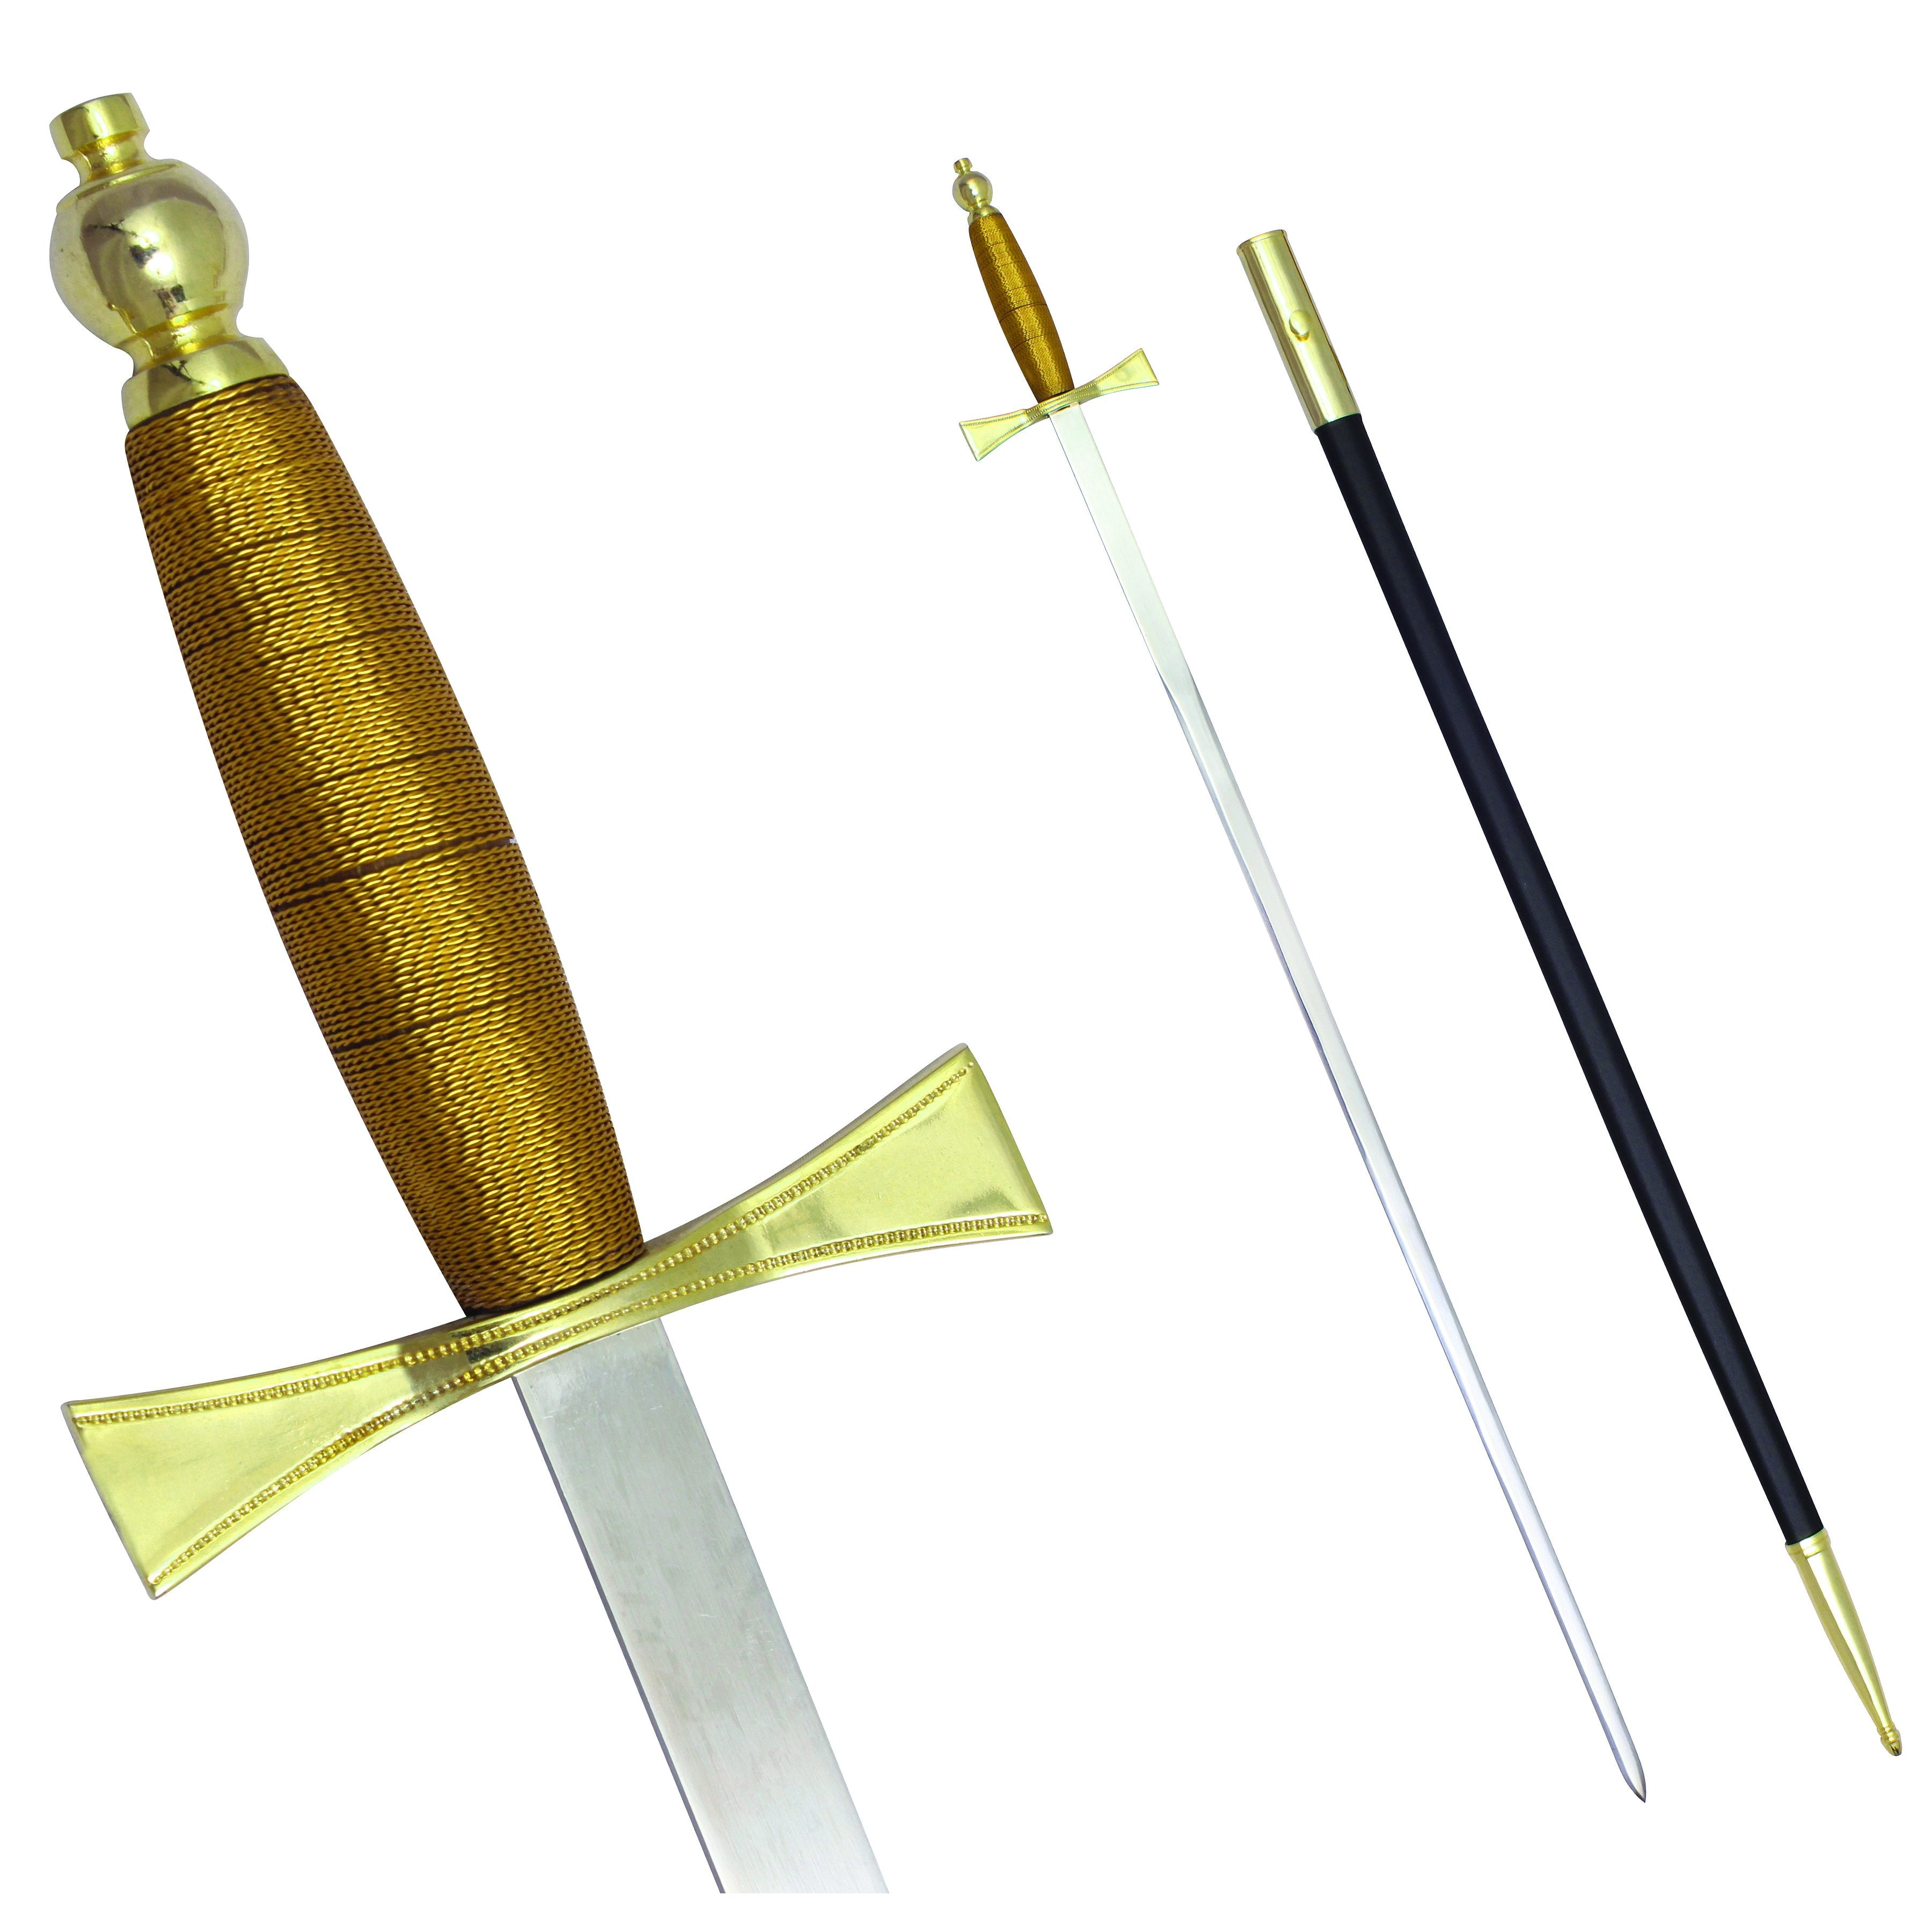 "Masonic Sword with Brown Gold Hilt and Black Scabbard 35 3/4"" + Free Case - Bricks Masons"